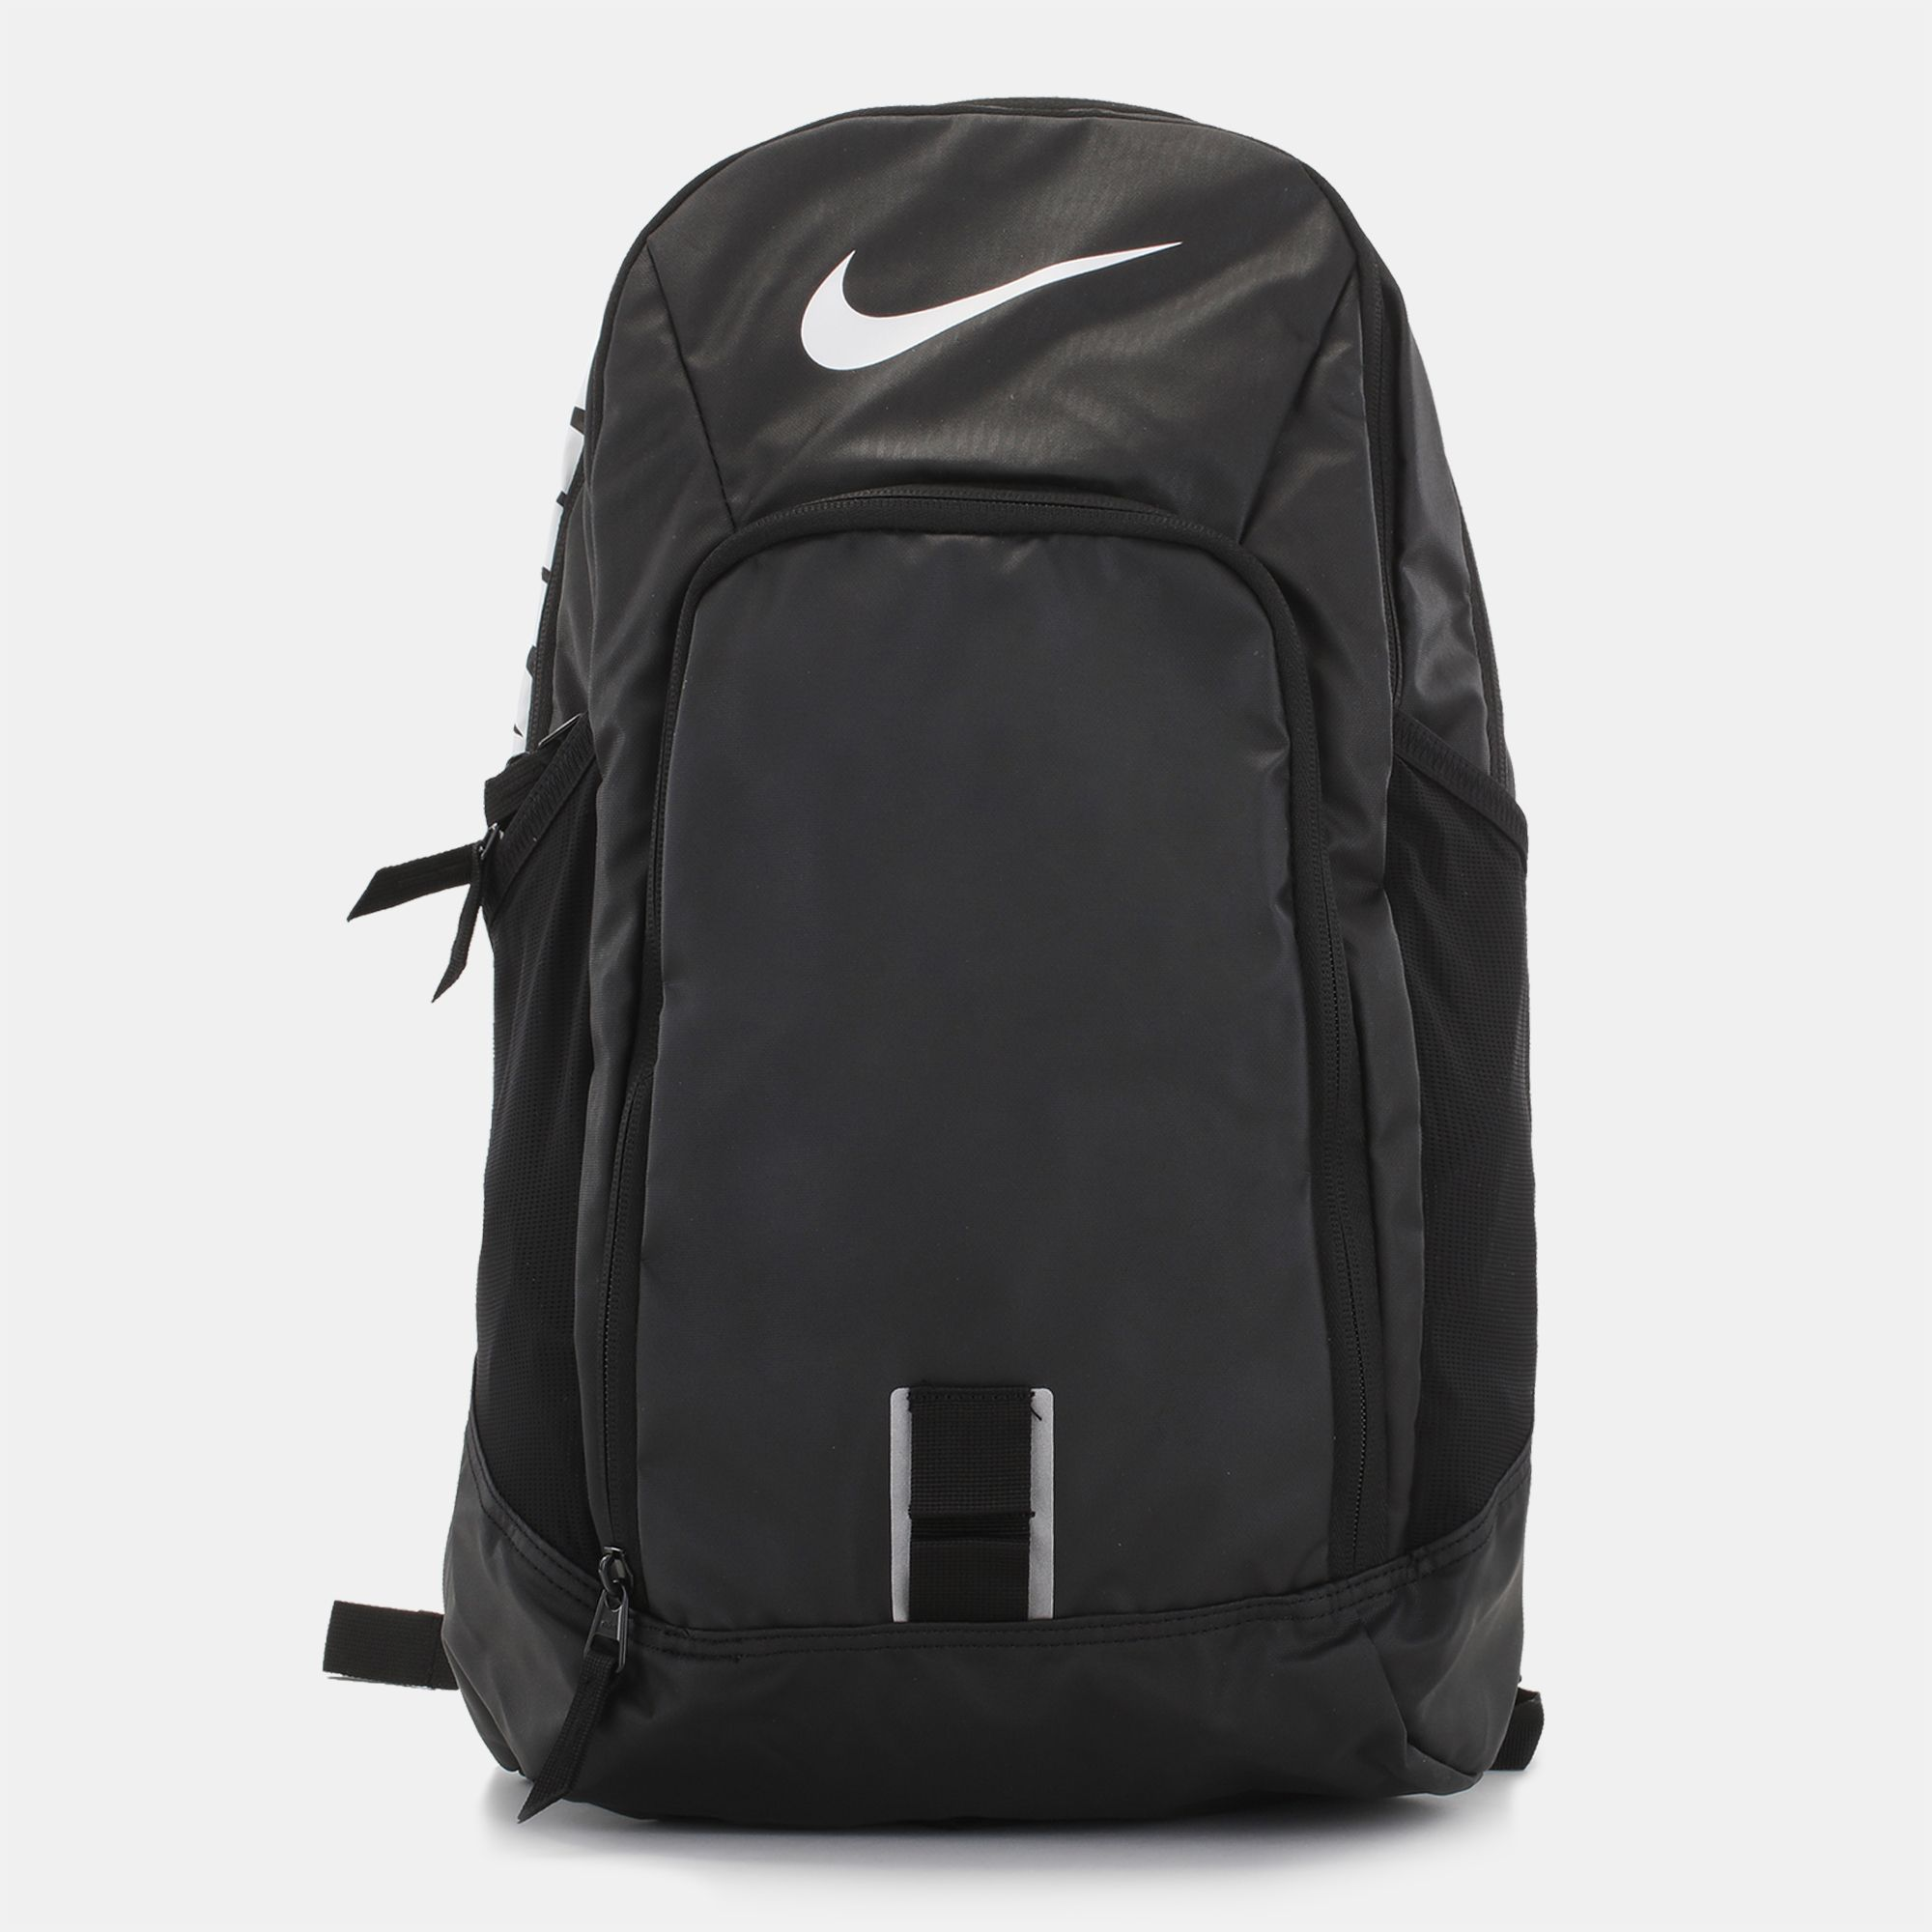 Shop Black Nike Alpha Adapt Rev Backpack for Mens by Nike SSS 7baa7c861aee4